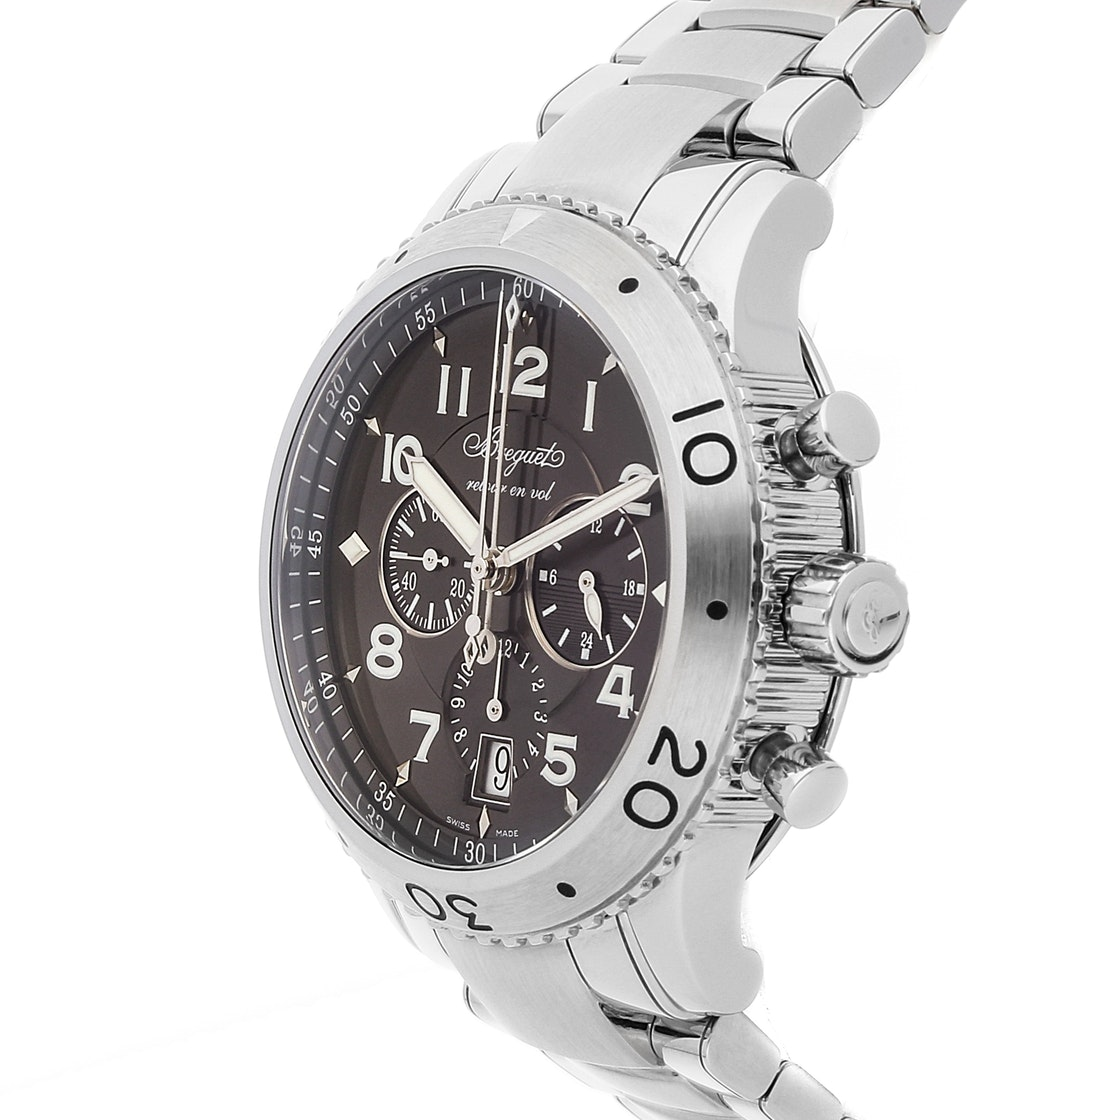 new concept 3b9fb 37a4a Breguet Type XXI Flyback Chronograph 3810ST/92/SZ9